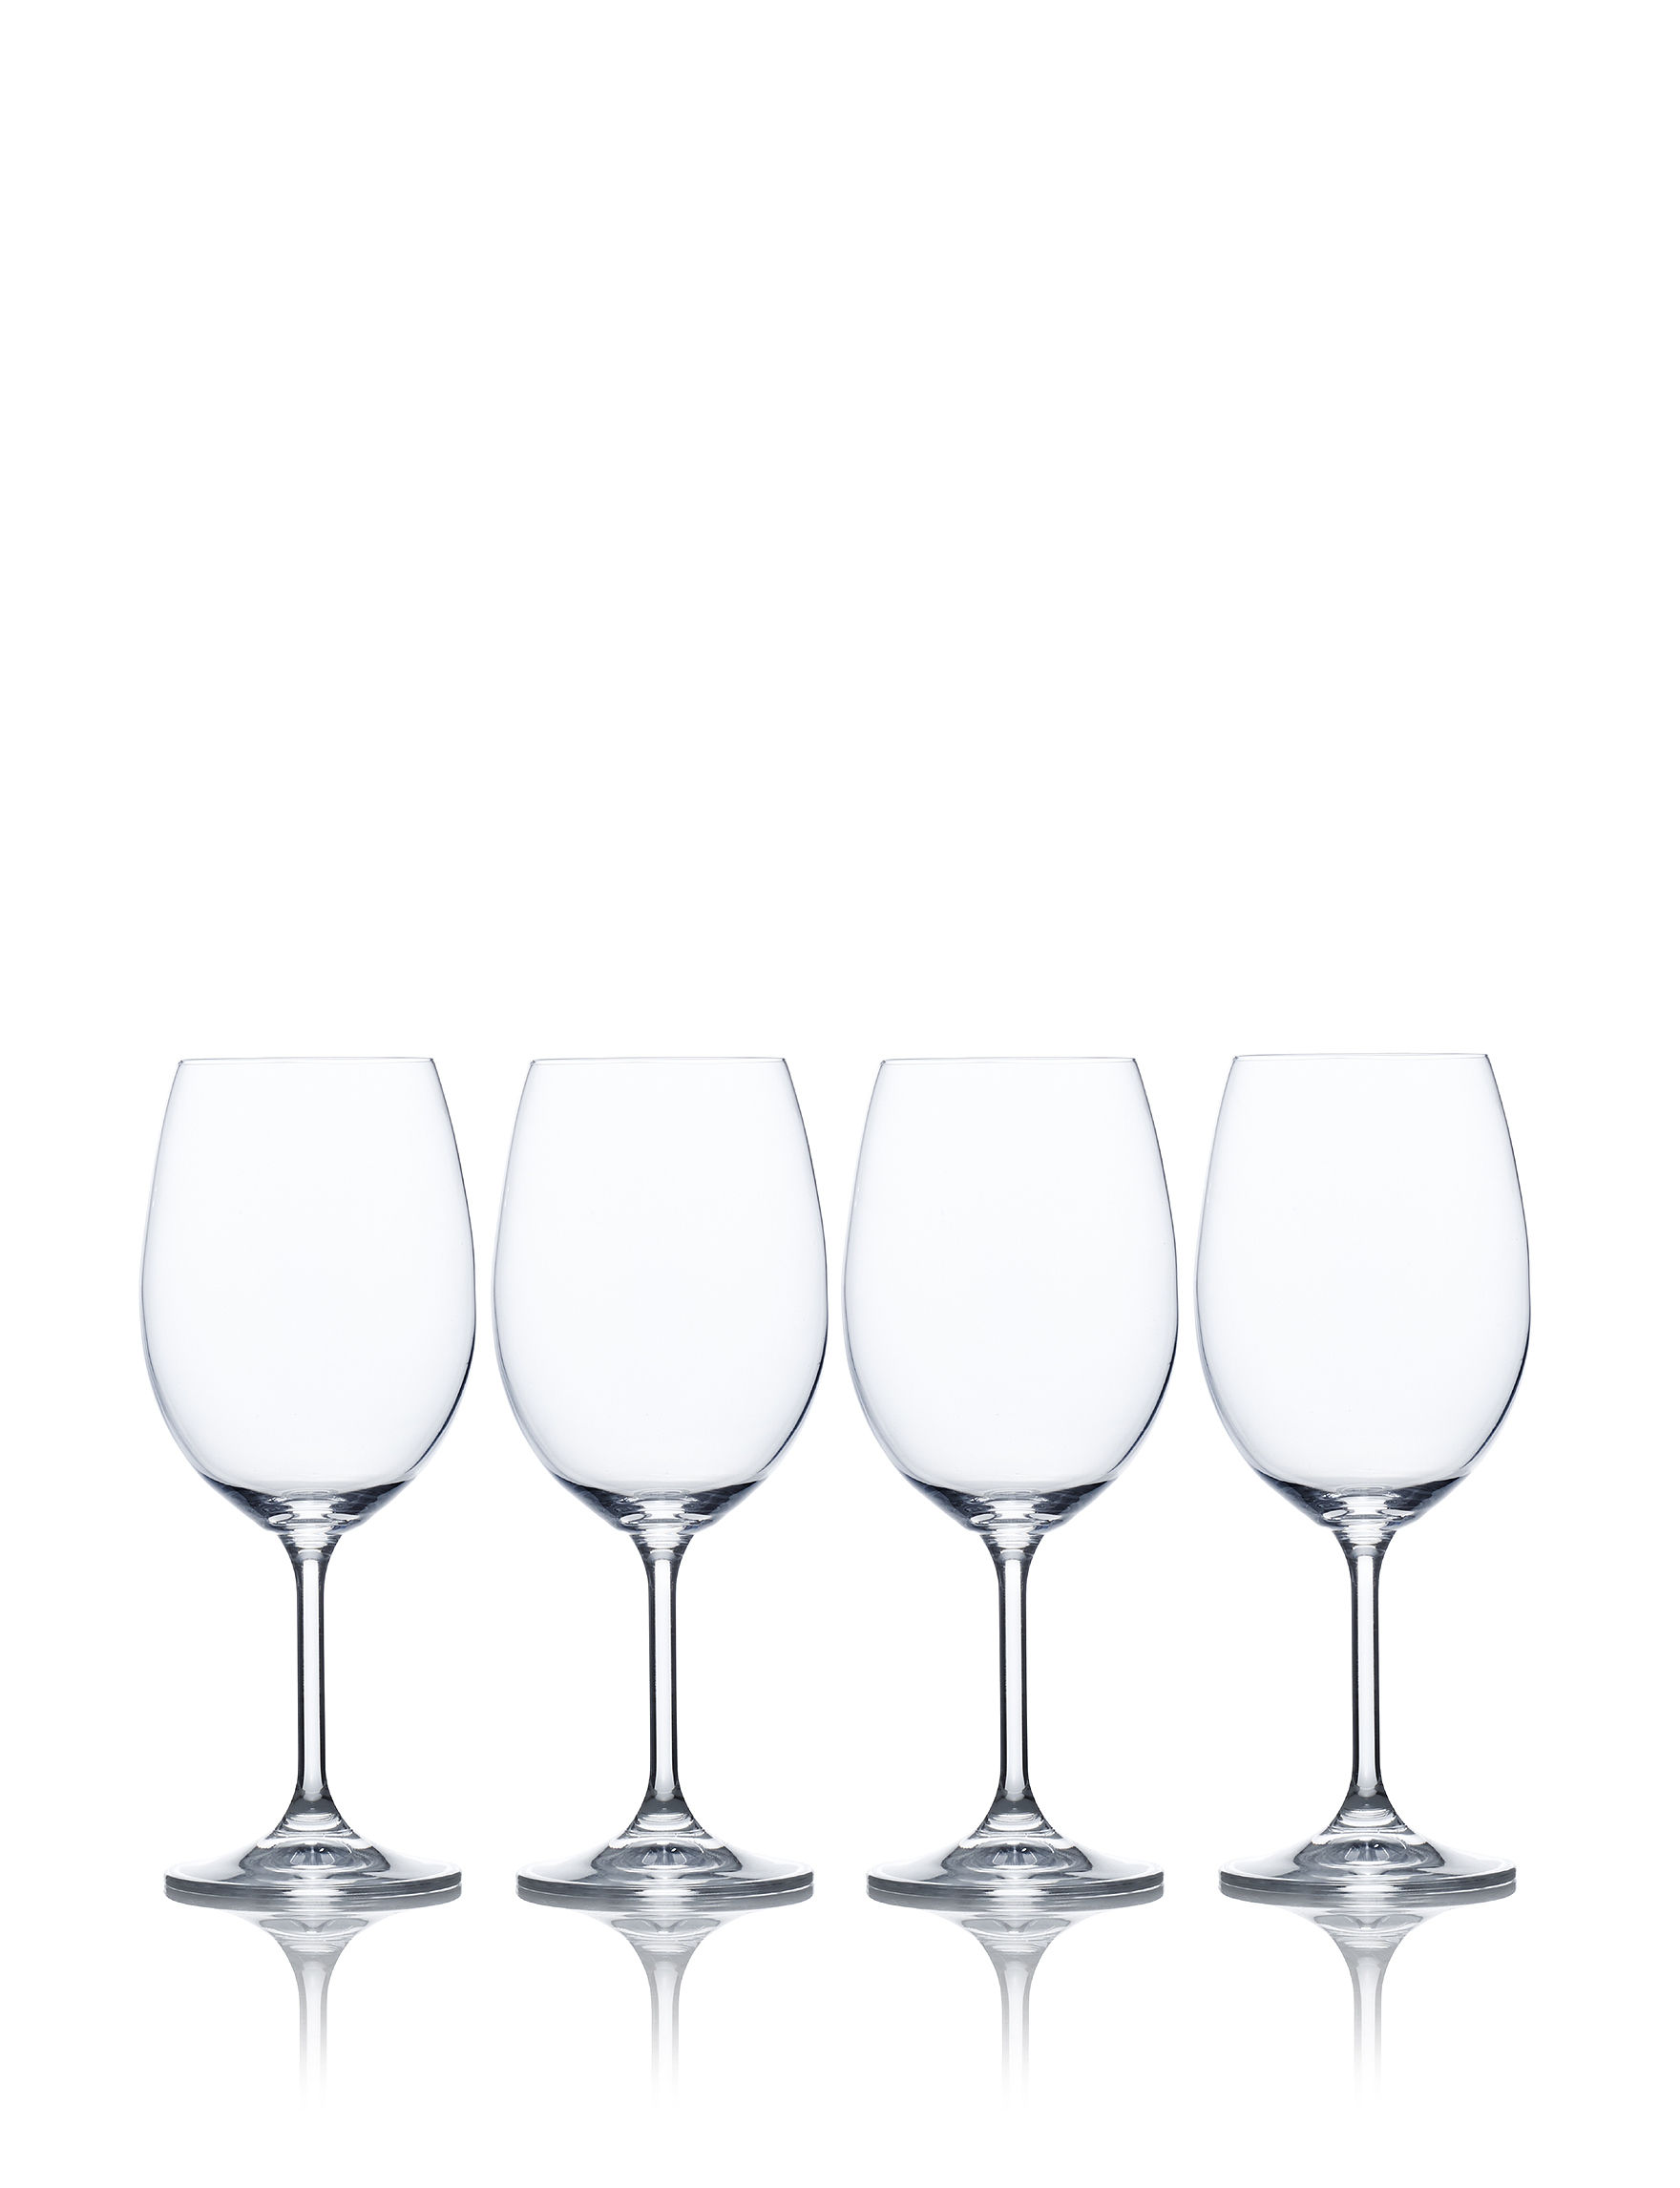 unbelievable price of mikasa wine glasses